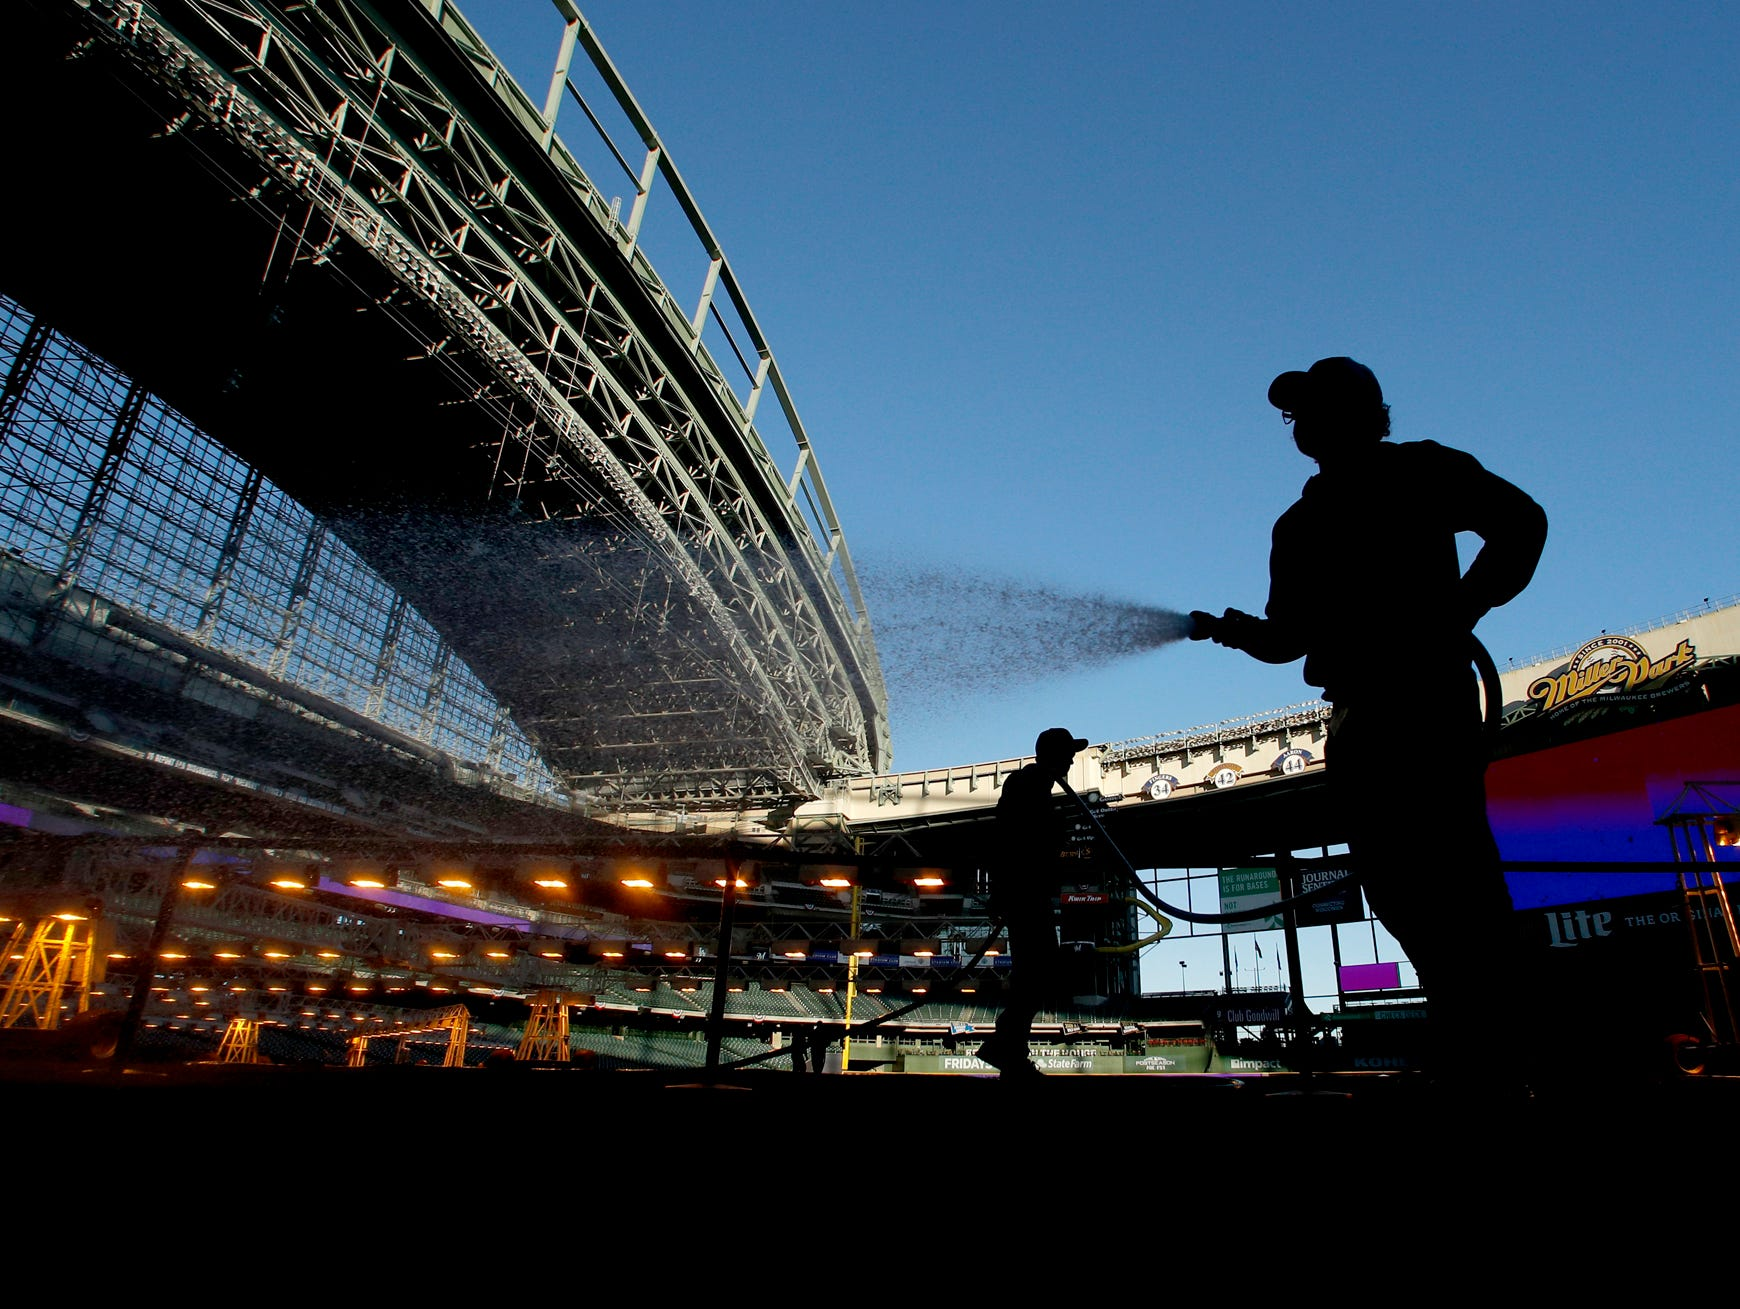 A member of the Miller Park grounds crew waters the turf on an off day in the National League Championship Series Thursday, Oct. 18, 2018, in Milwaukee. The Las Angeles Dodgers and the Milwaukee Brewers are scheduled to play Game 6 of the baseball series on Friday. (AP Photo/Charlie Riedel)